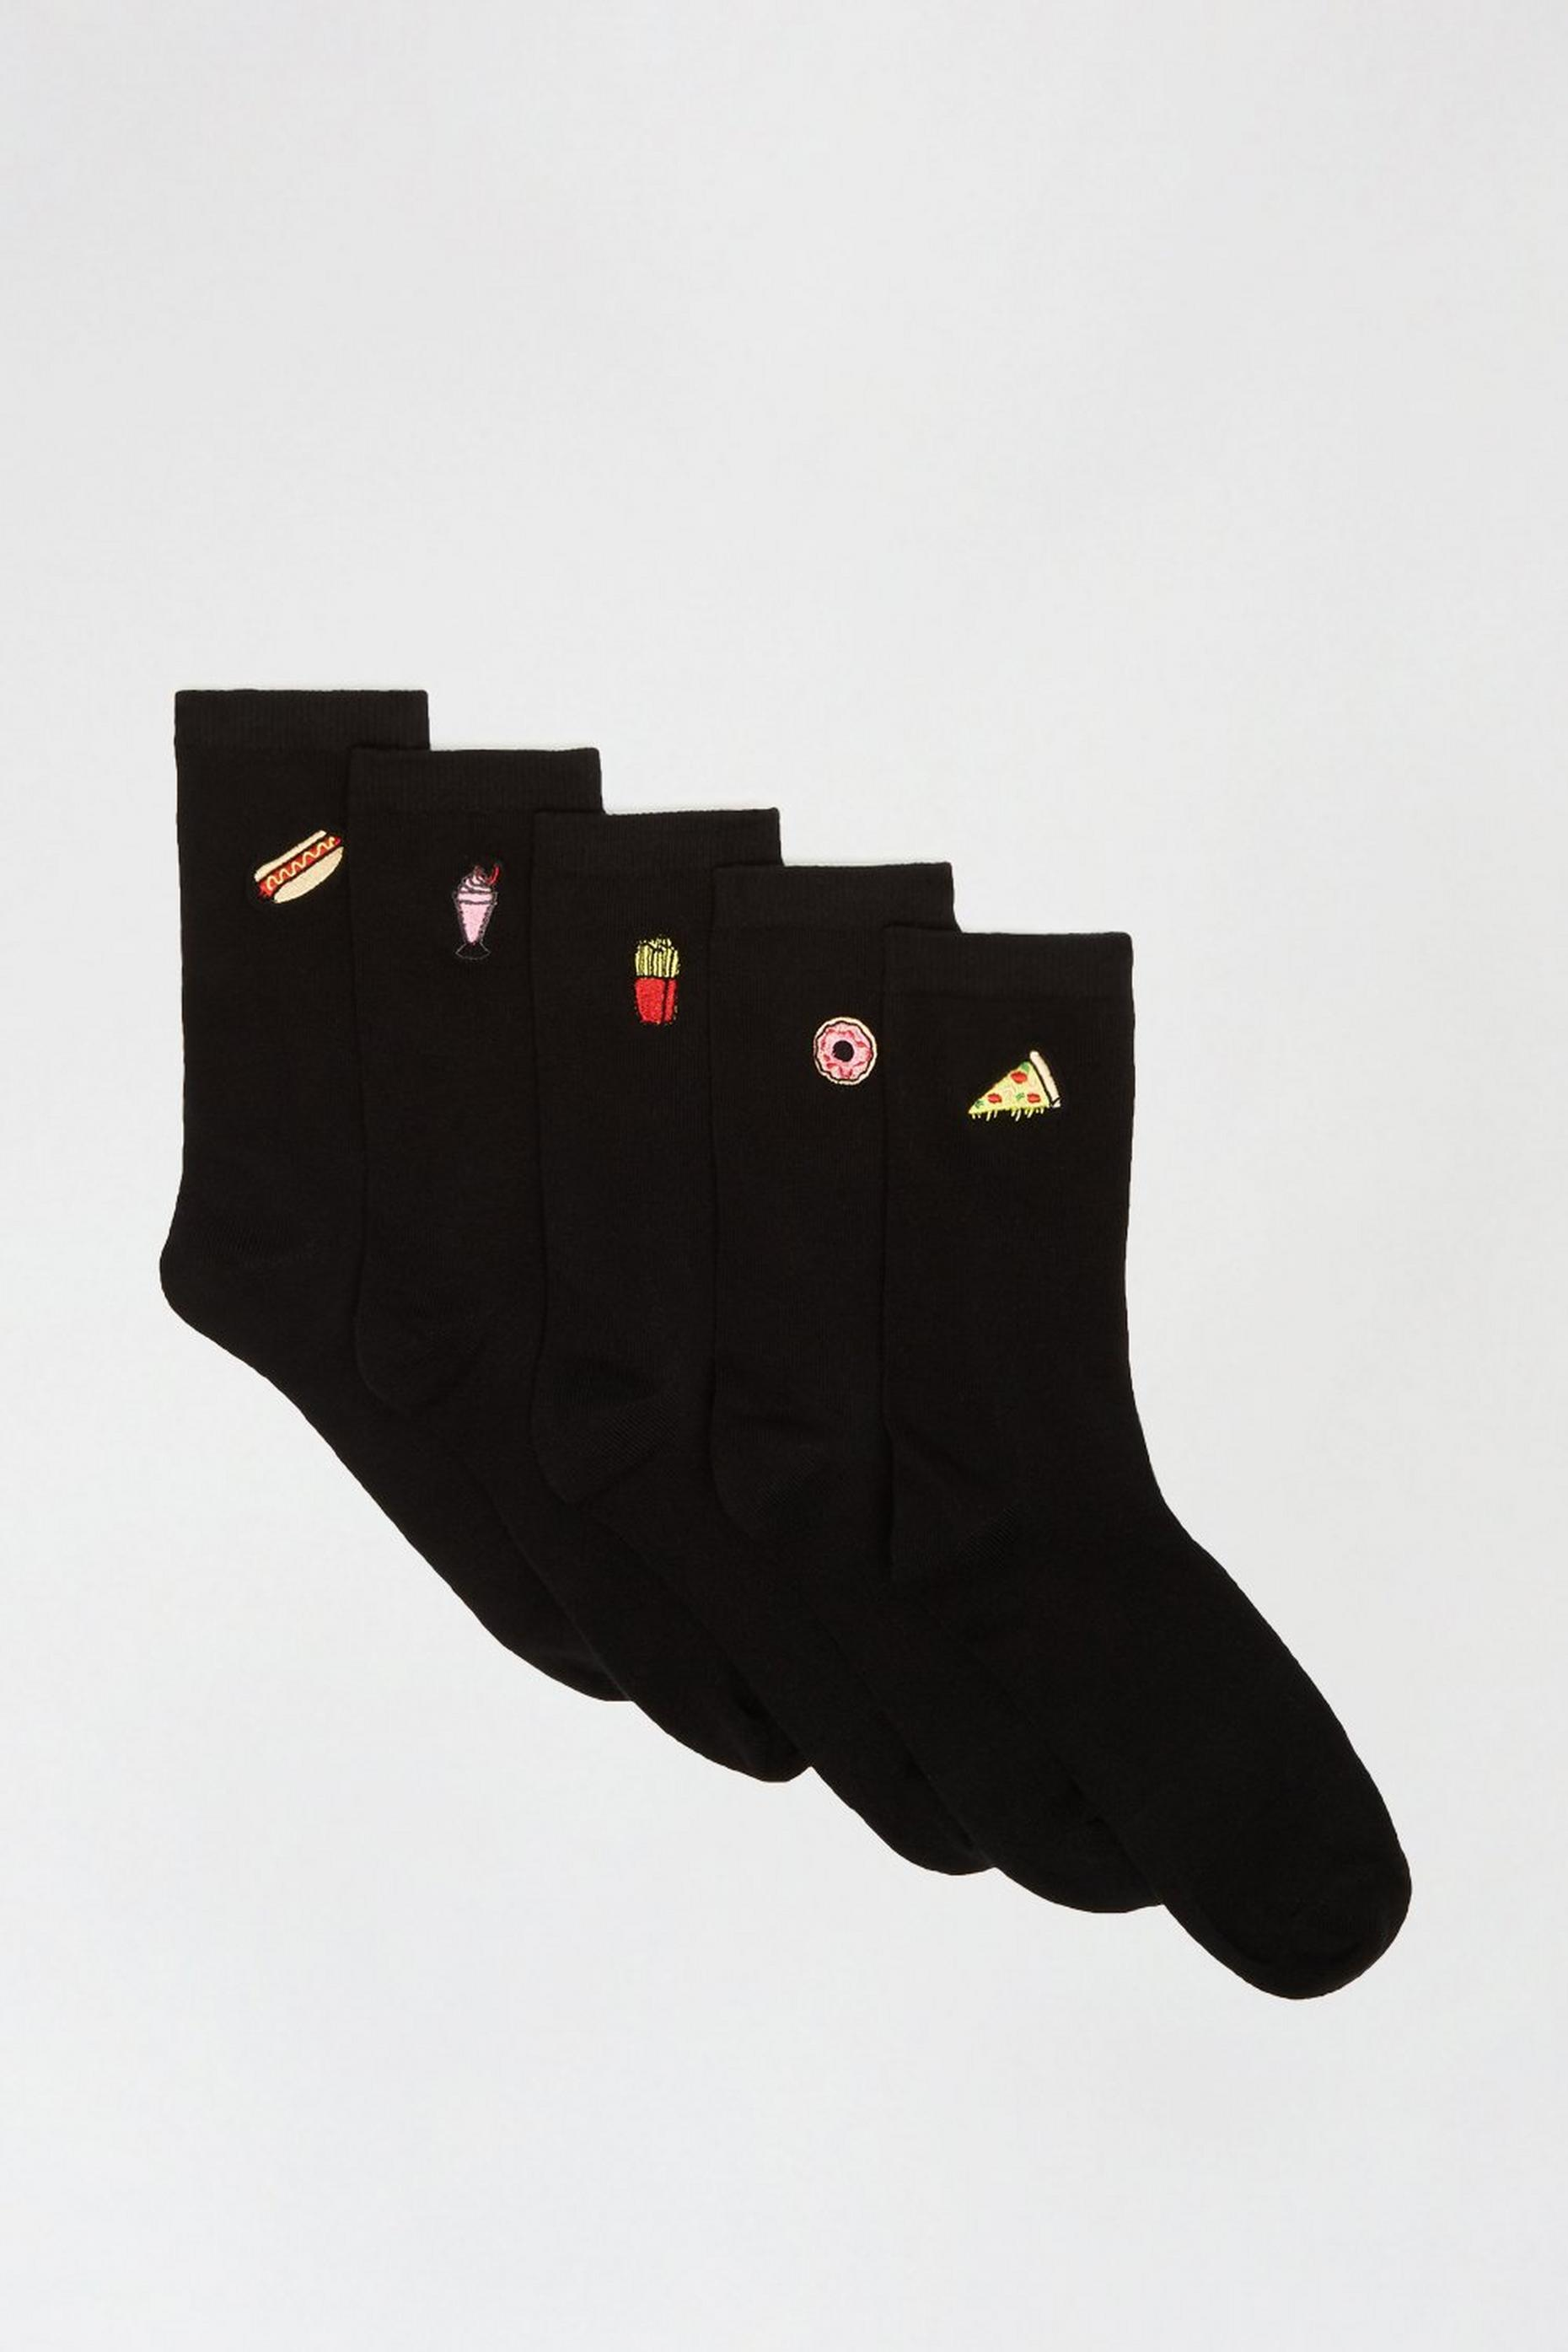 Food Embroidered 5 Pack Ankle Socks